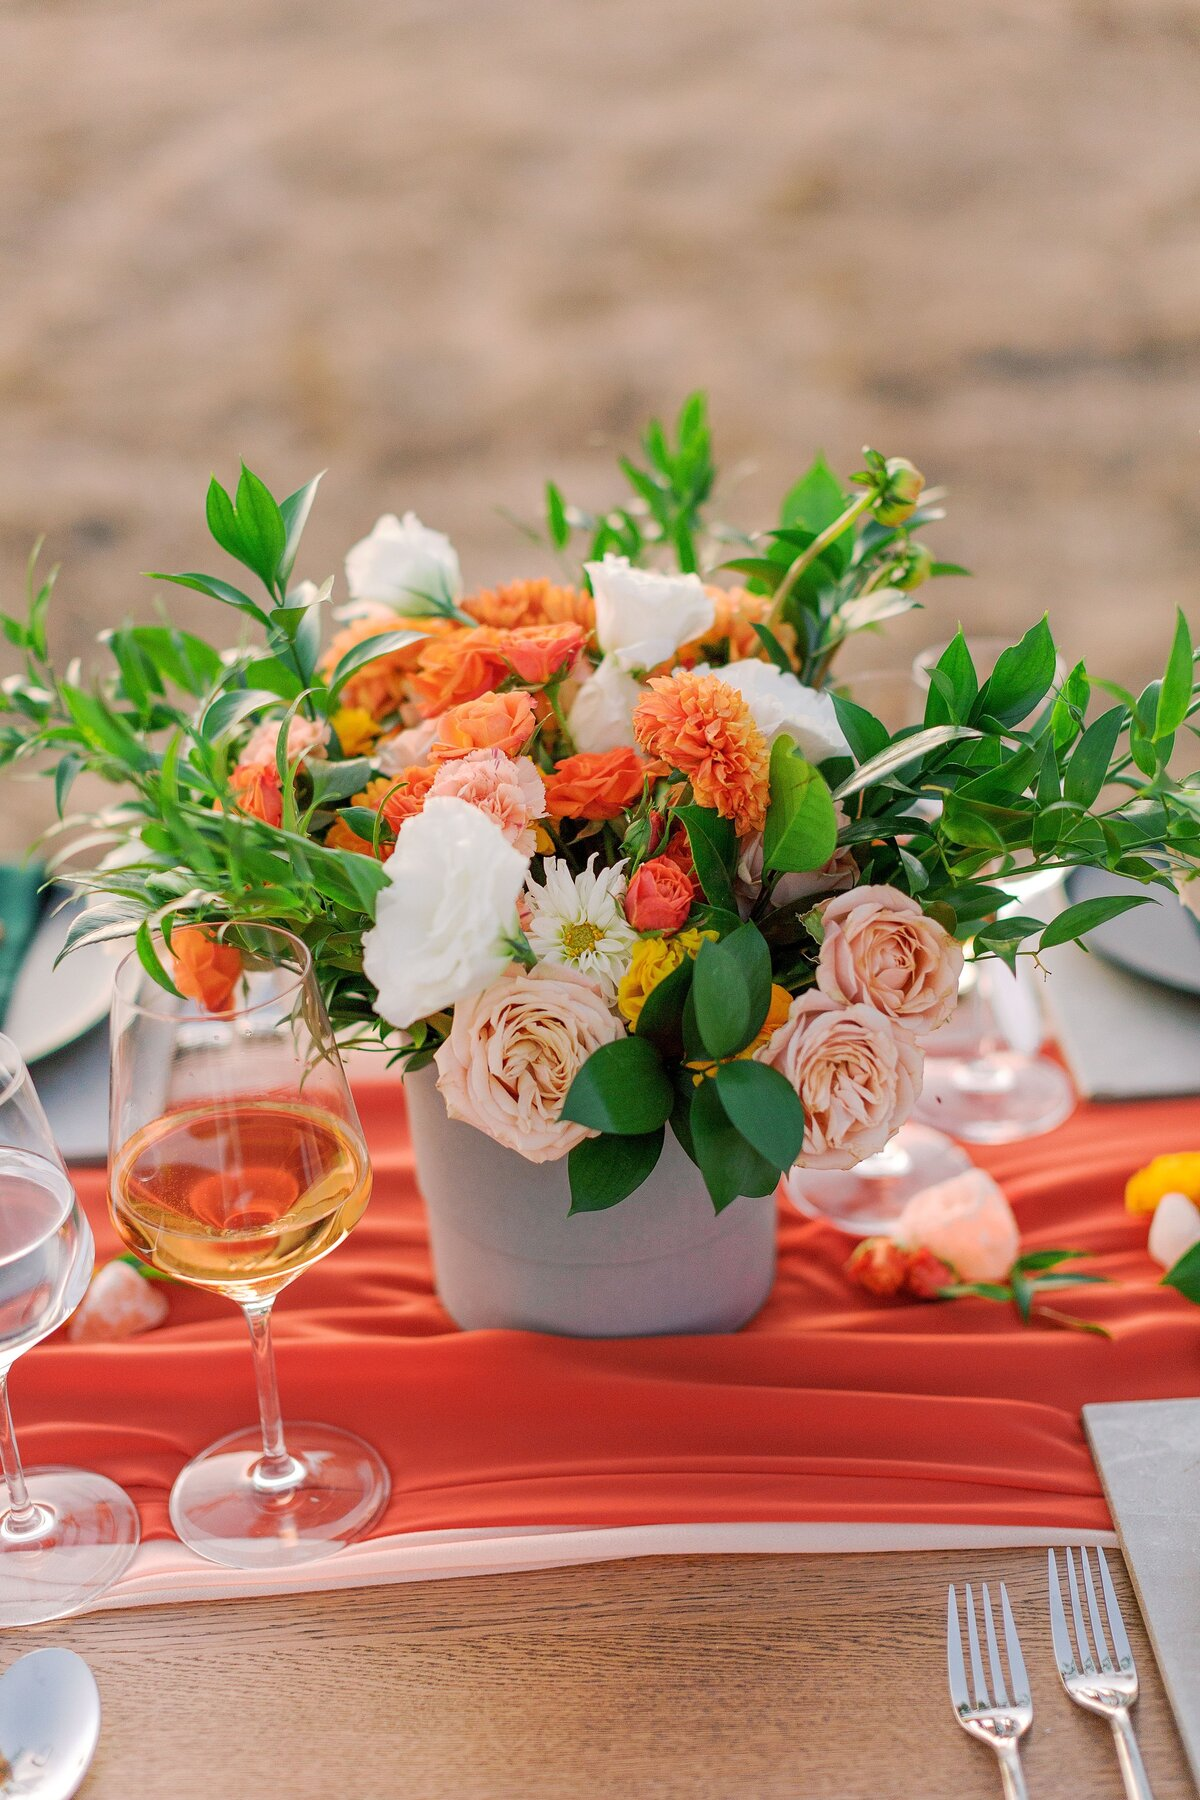 20191020 Modern Elegance Wedding Styled Shoot at Three Steves Winery Livermore_Bethany Picone Photography-253_WEB